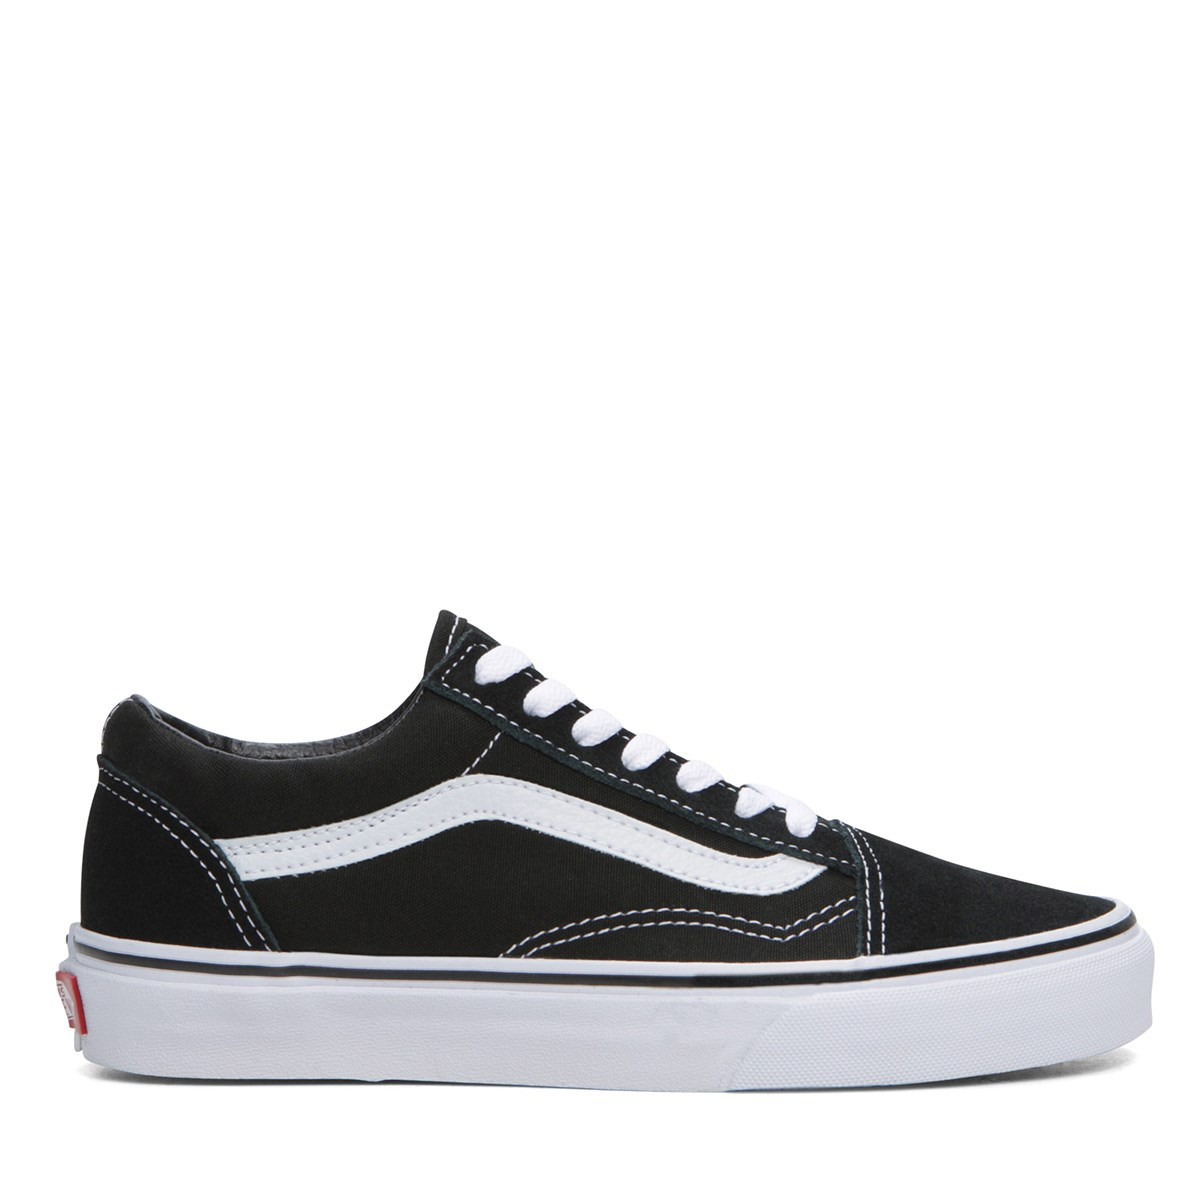 d61c2522b9577b Old Skool Black   White Sneaker